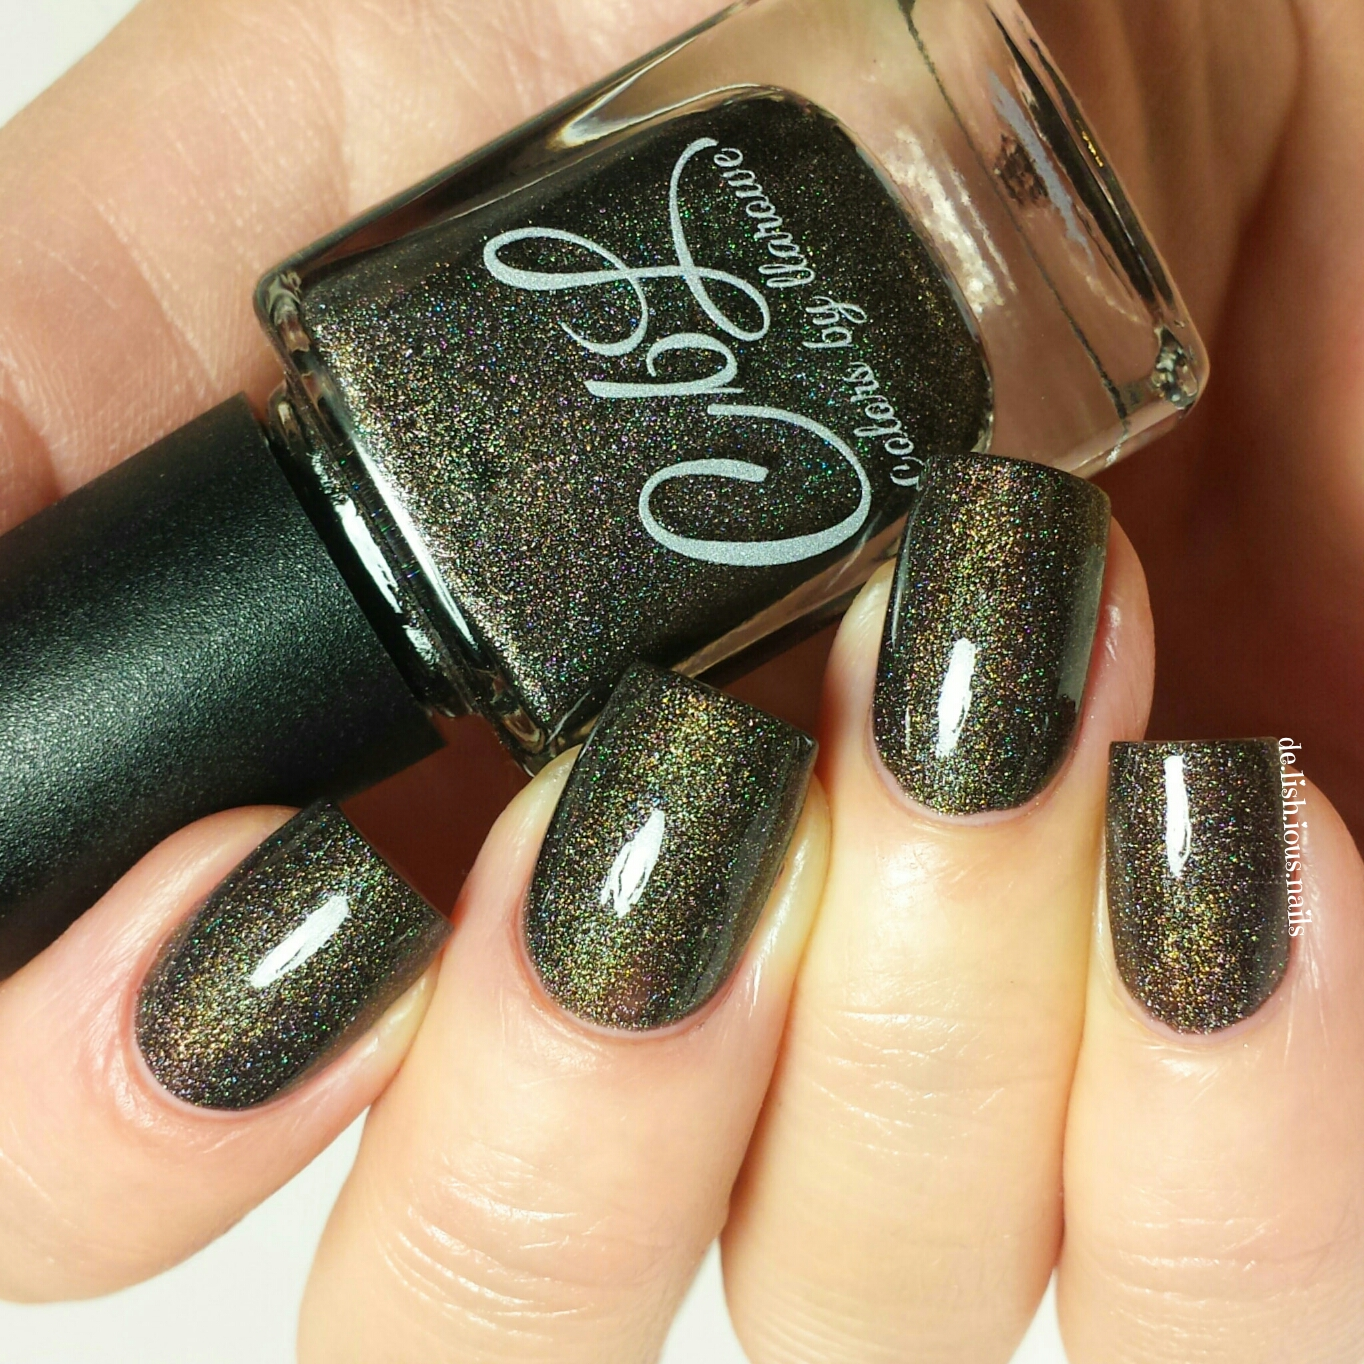 CbL Winter Collection 2015 – De-Lish-ious Nails